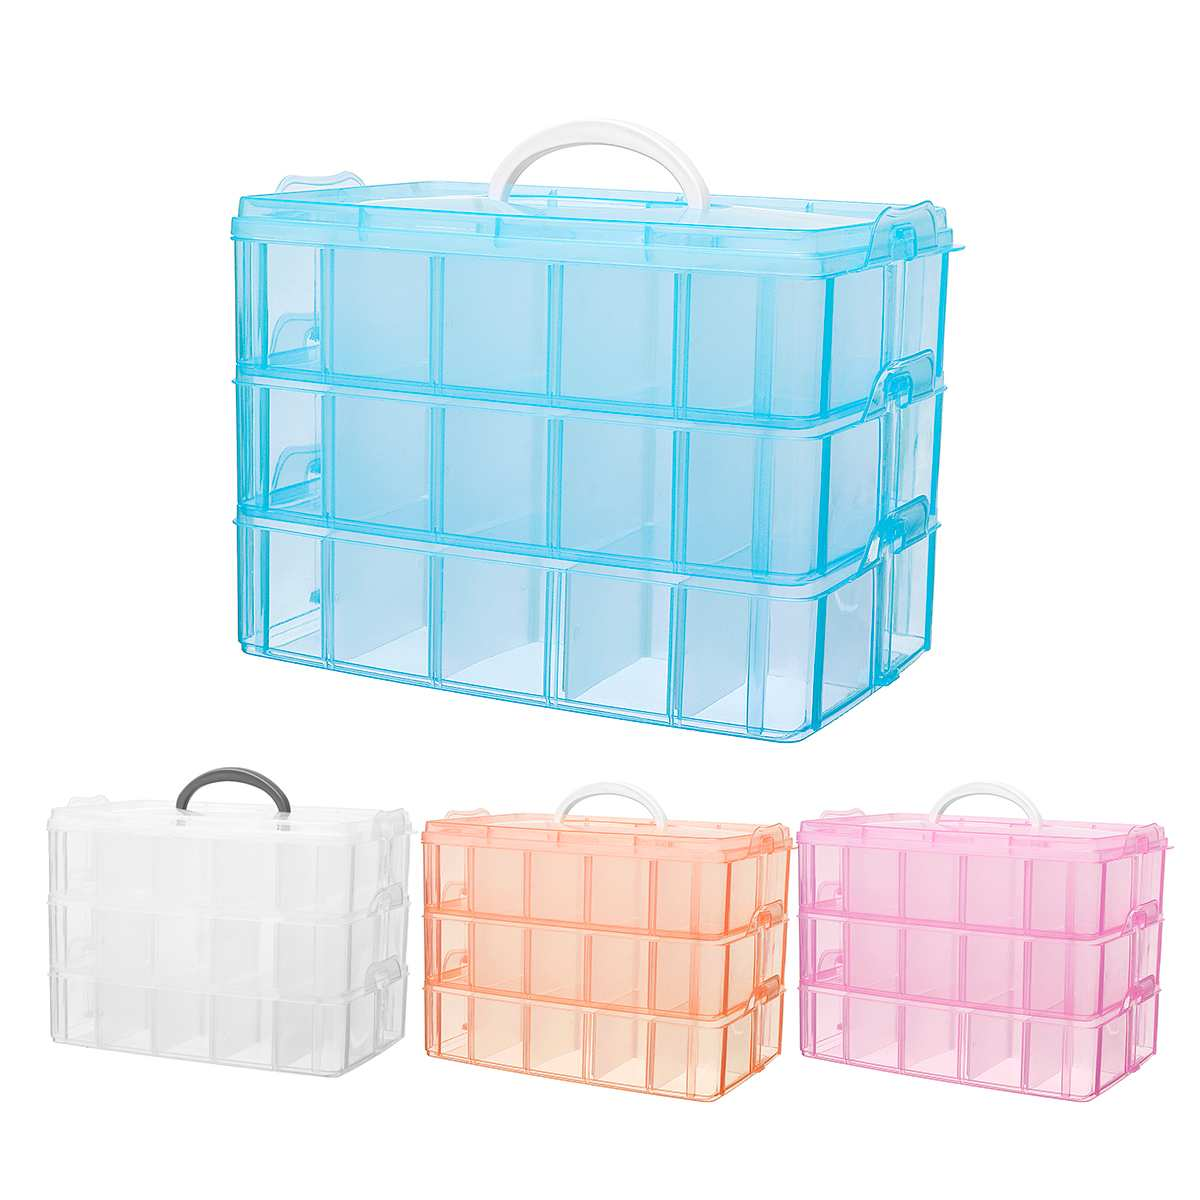 3 Layer Grids Jewellery Craft Beads Case Box Plastic Storage Box Case Compartment Box Clear Storage Organiser Tool|Storage Boxes & Bins| |  - title=